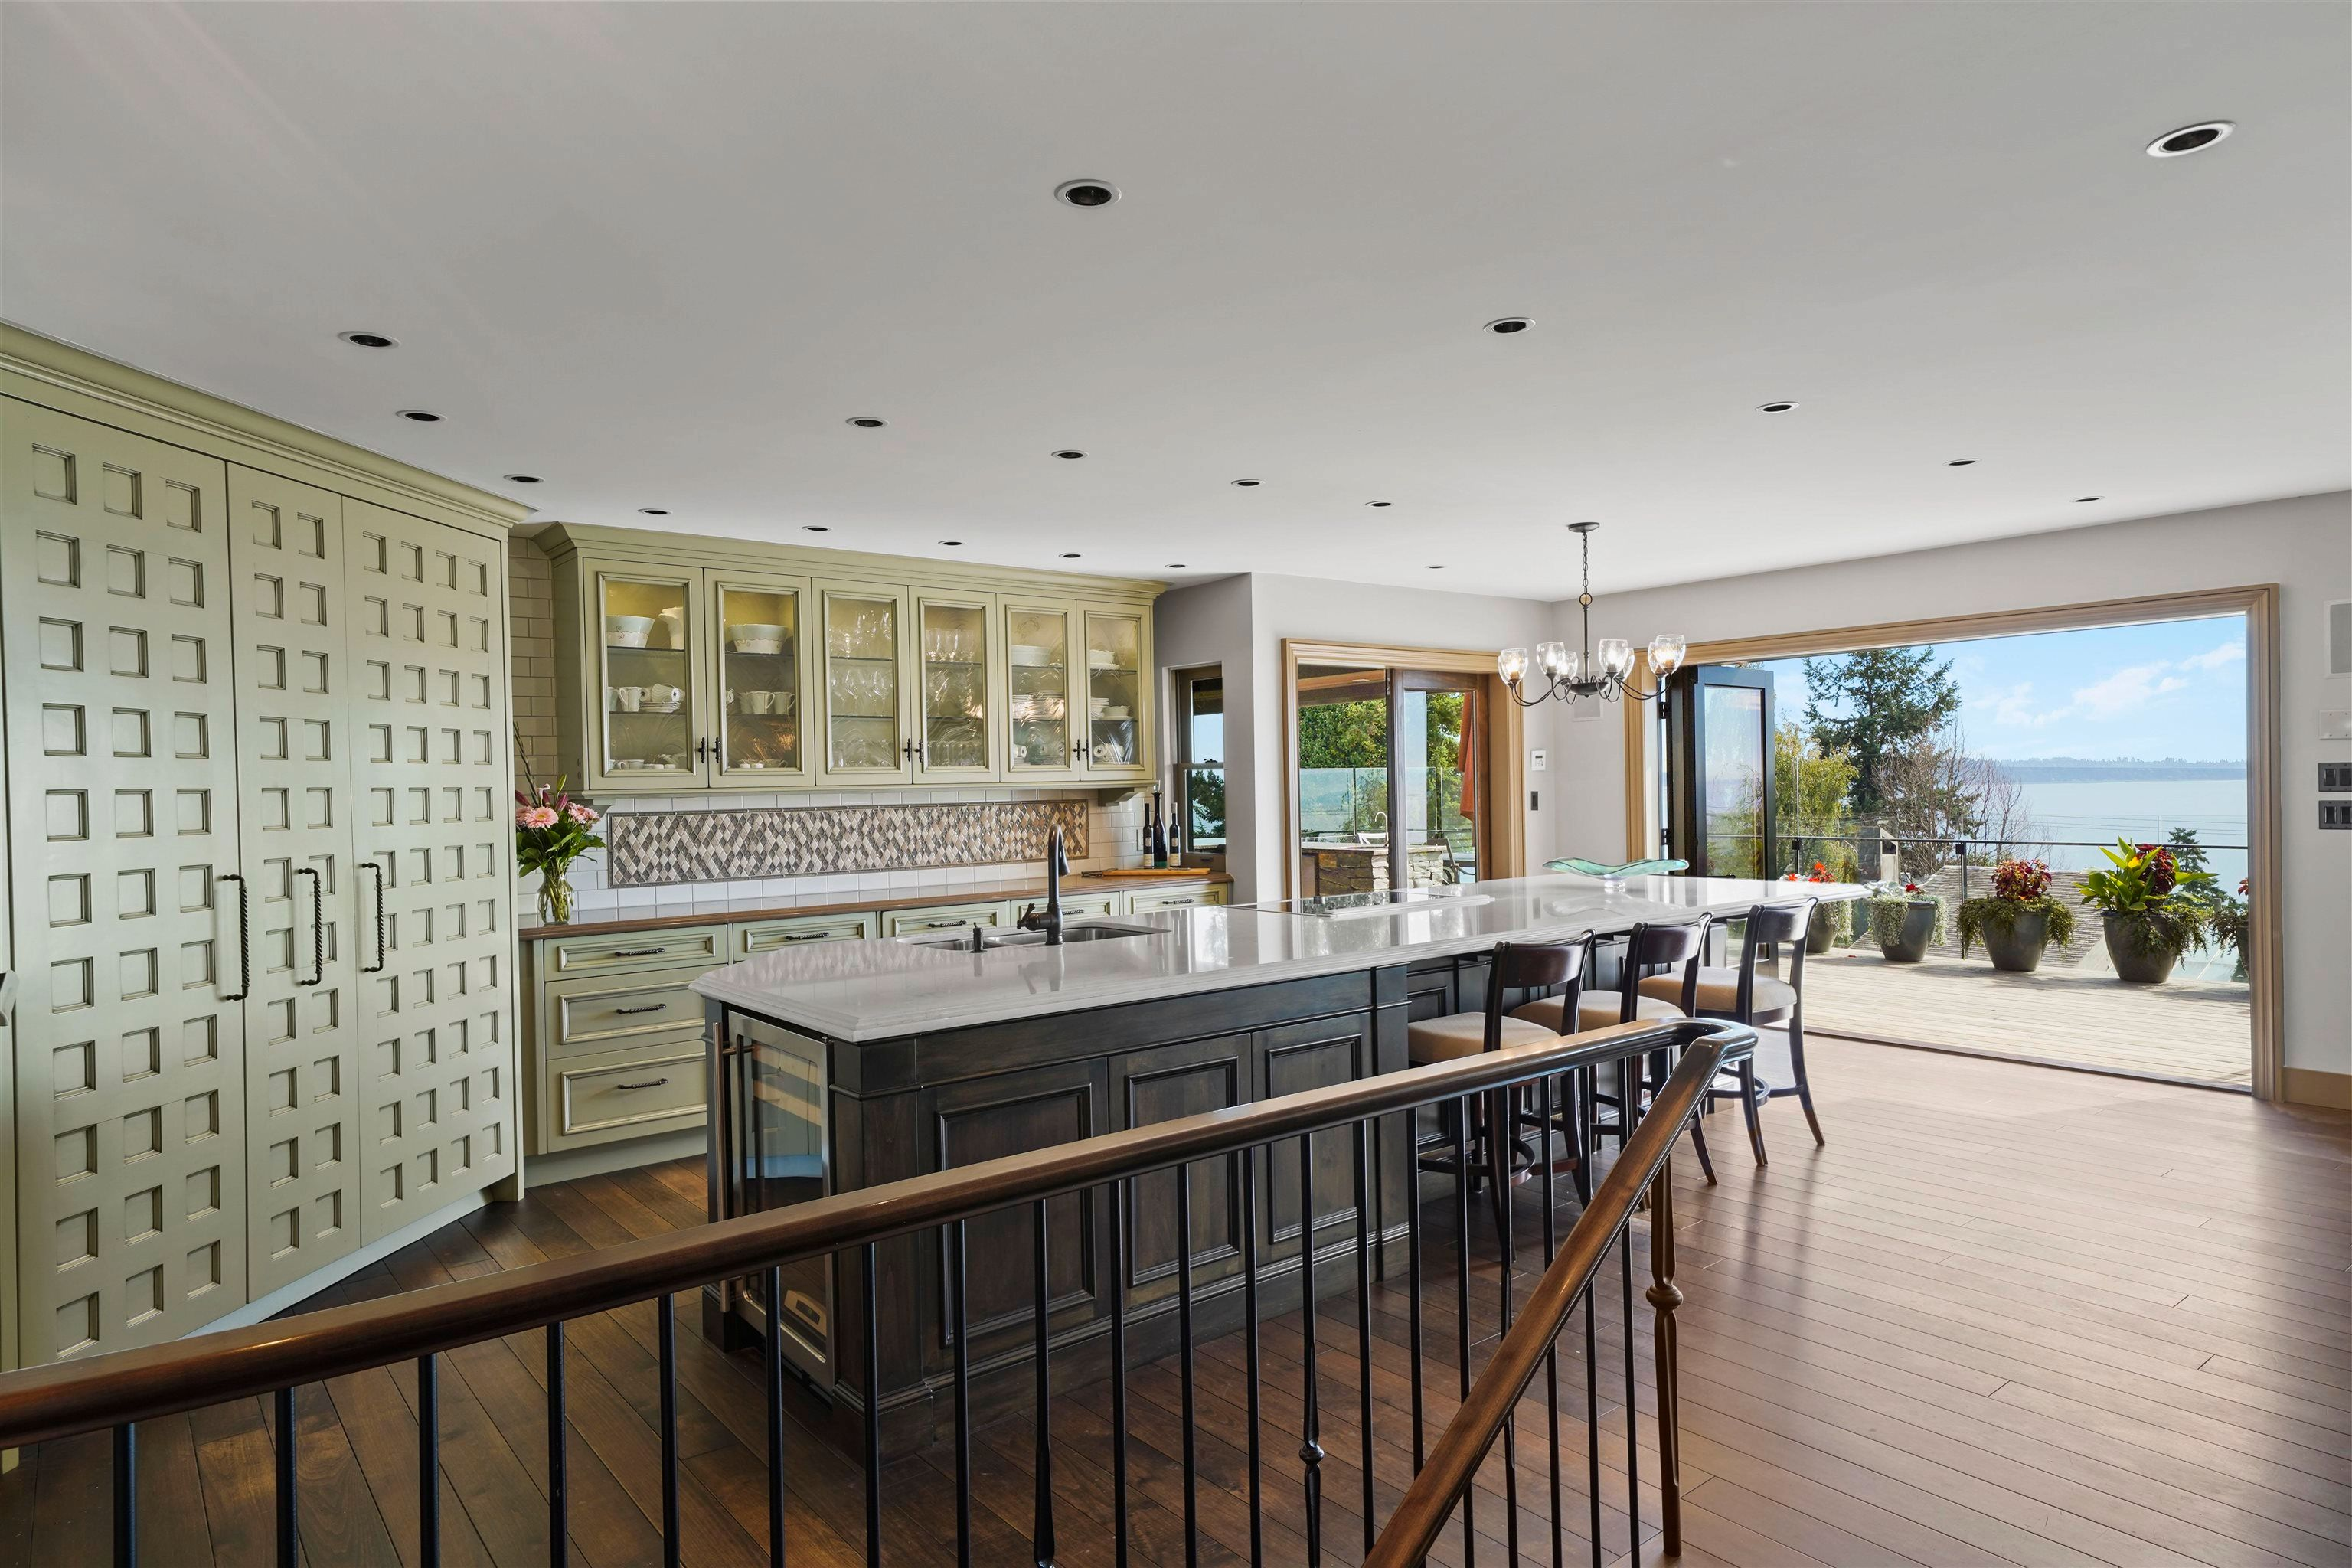 """Main Photo: 14170 WHEATLEY Avenue: White Rock House for sale in """"West Side"""" (South Surrey White Rock)  : MLS®# R2620331"""